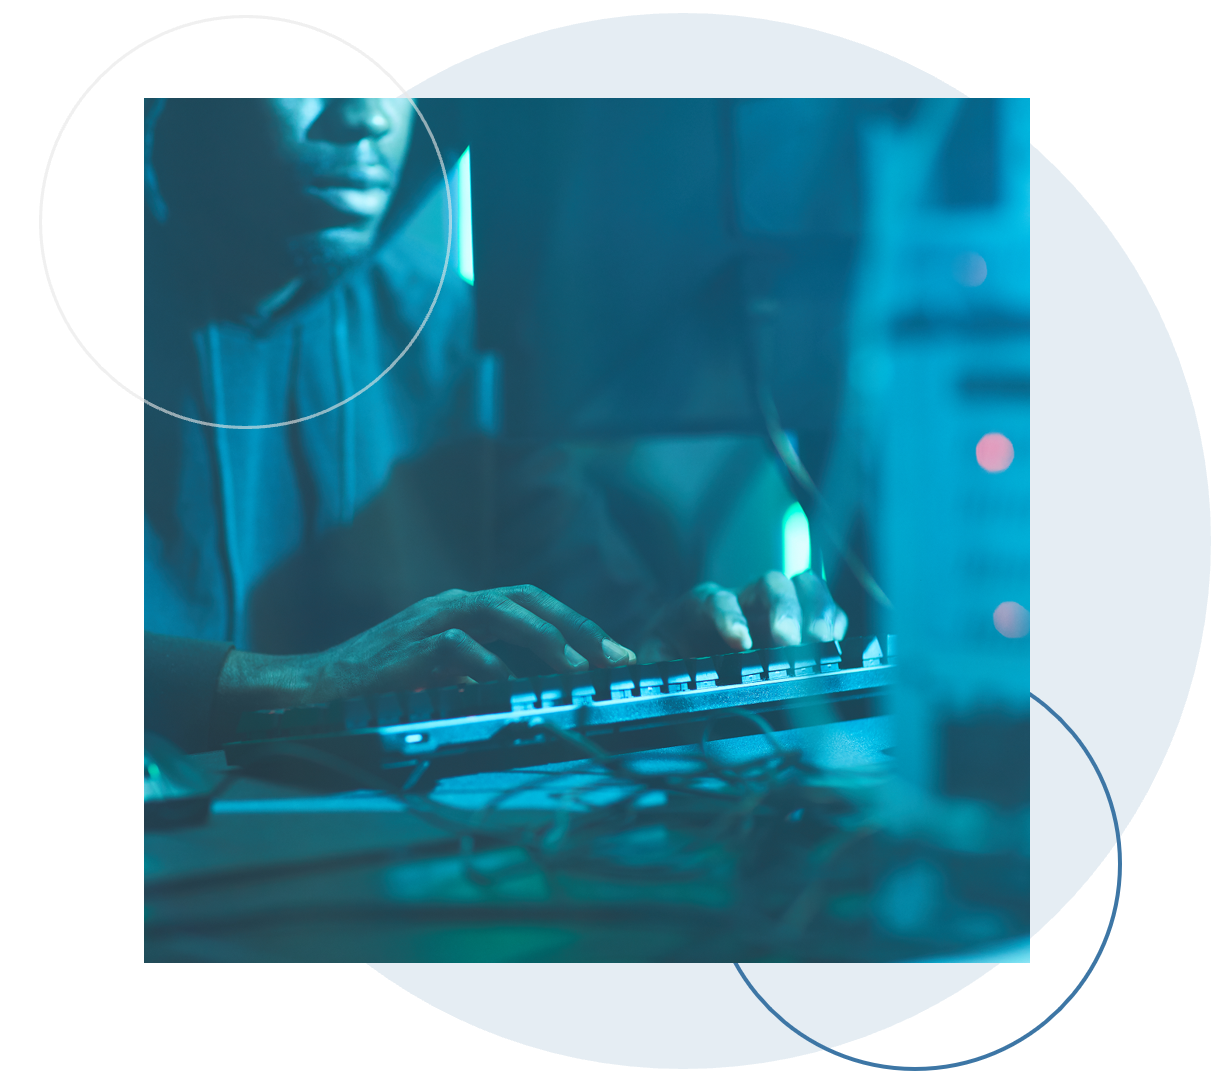 Cyber Security - It's never easy to be heard in the crowded cybersecurity market. Watterson knows the angles that resonate, we have runs on the board, and our team of former journalists have proven experience making your voice stand out from the crowd.